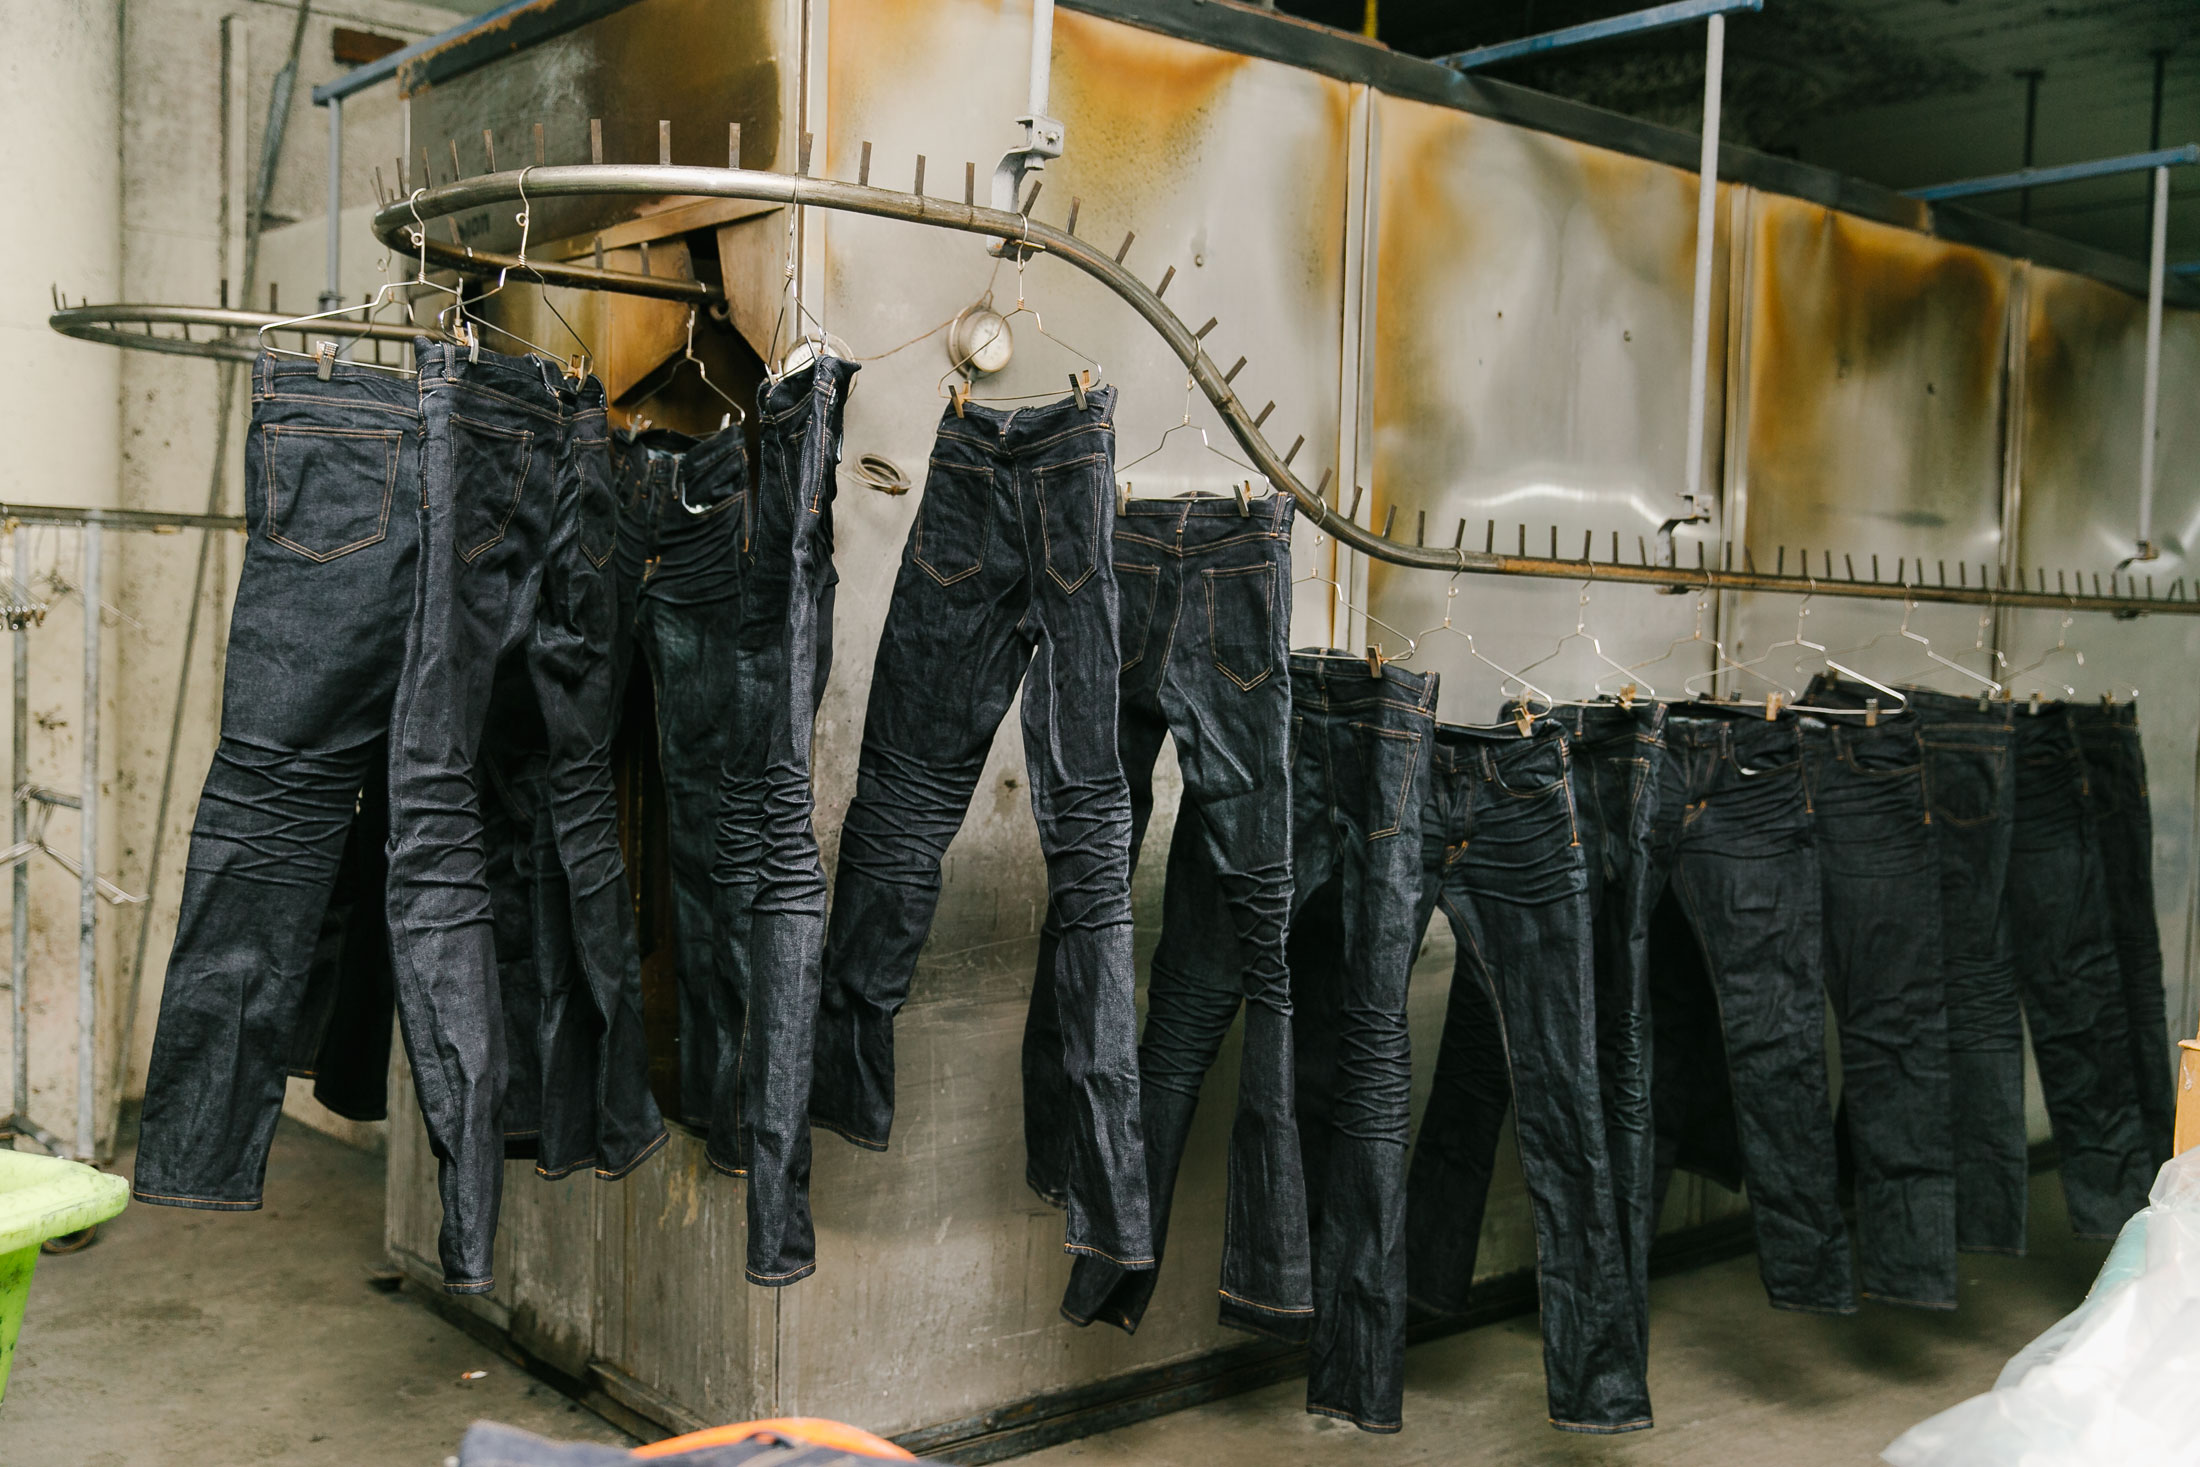 """After wet processing, the jeans are dried and prepped for the final detailing. """"We want them to look authentic,"""" Fry says. We work really hard to make the washes and fabric not look contrived.""""(Photo: Angi Welsch/Surface)"""